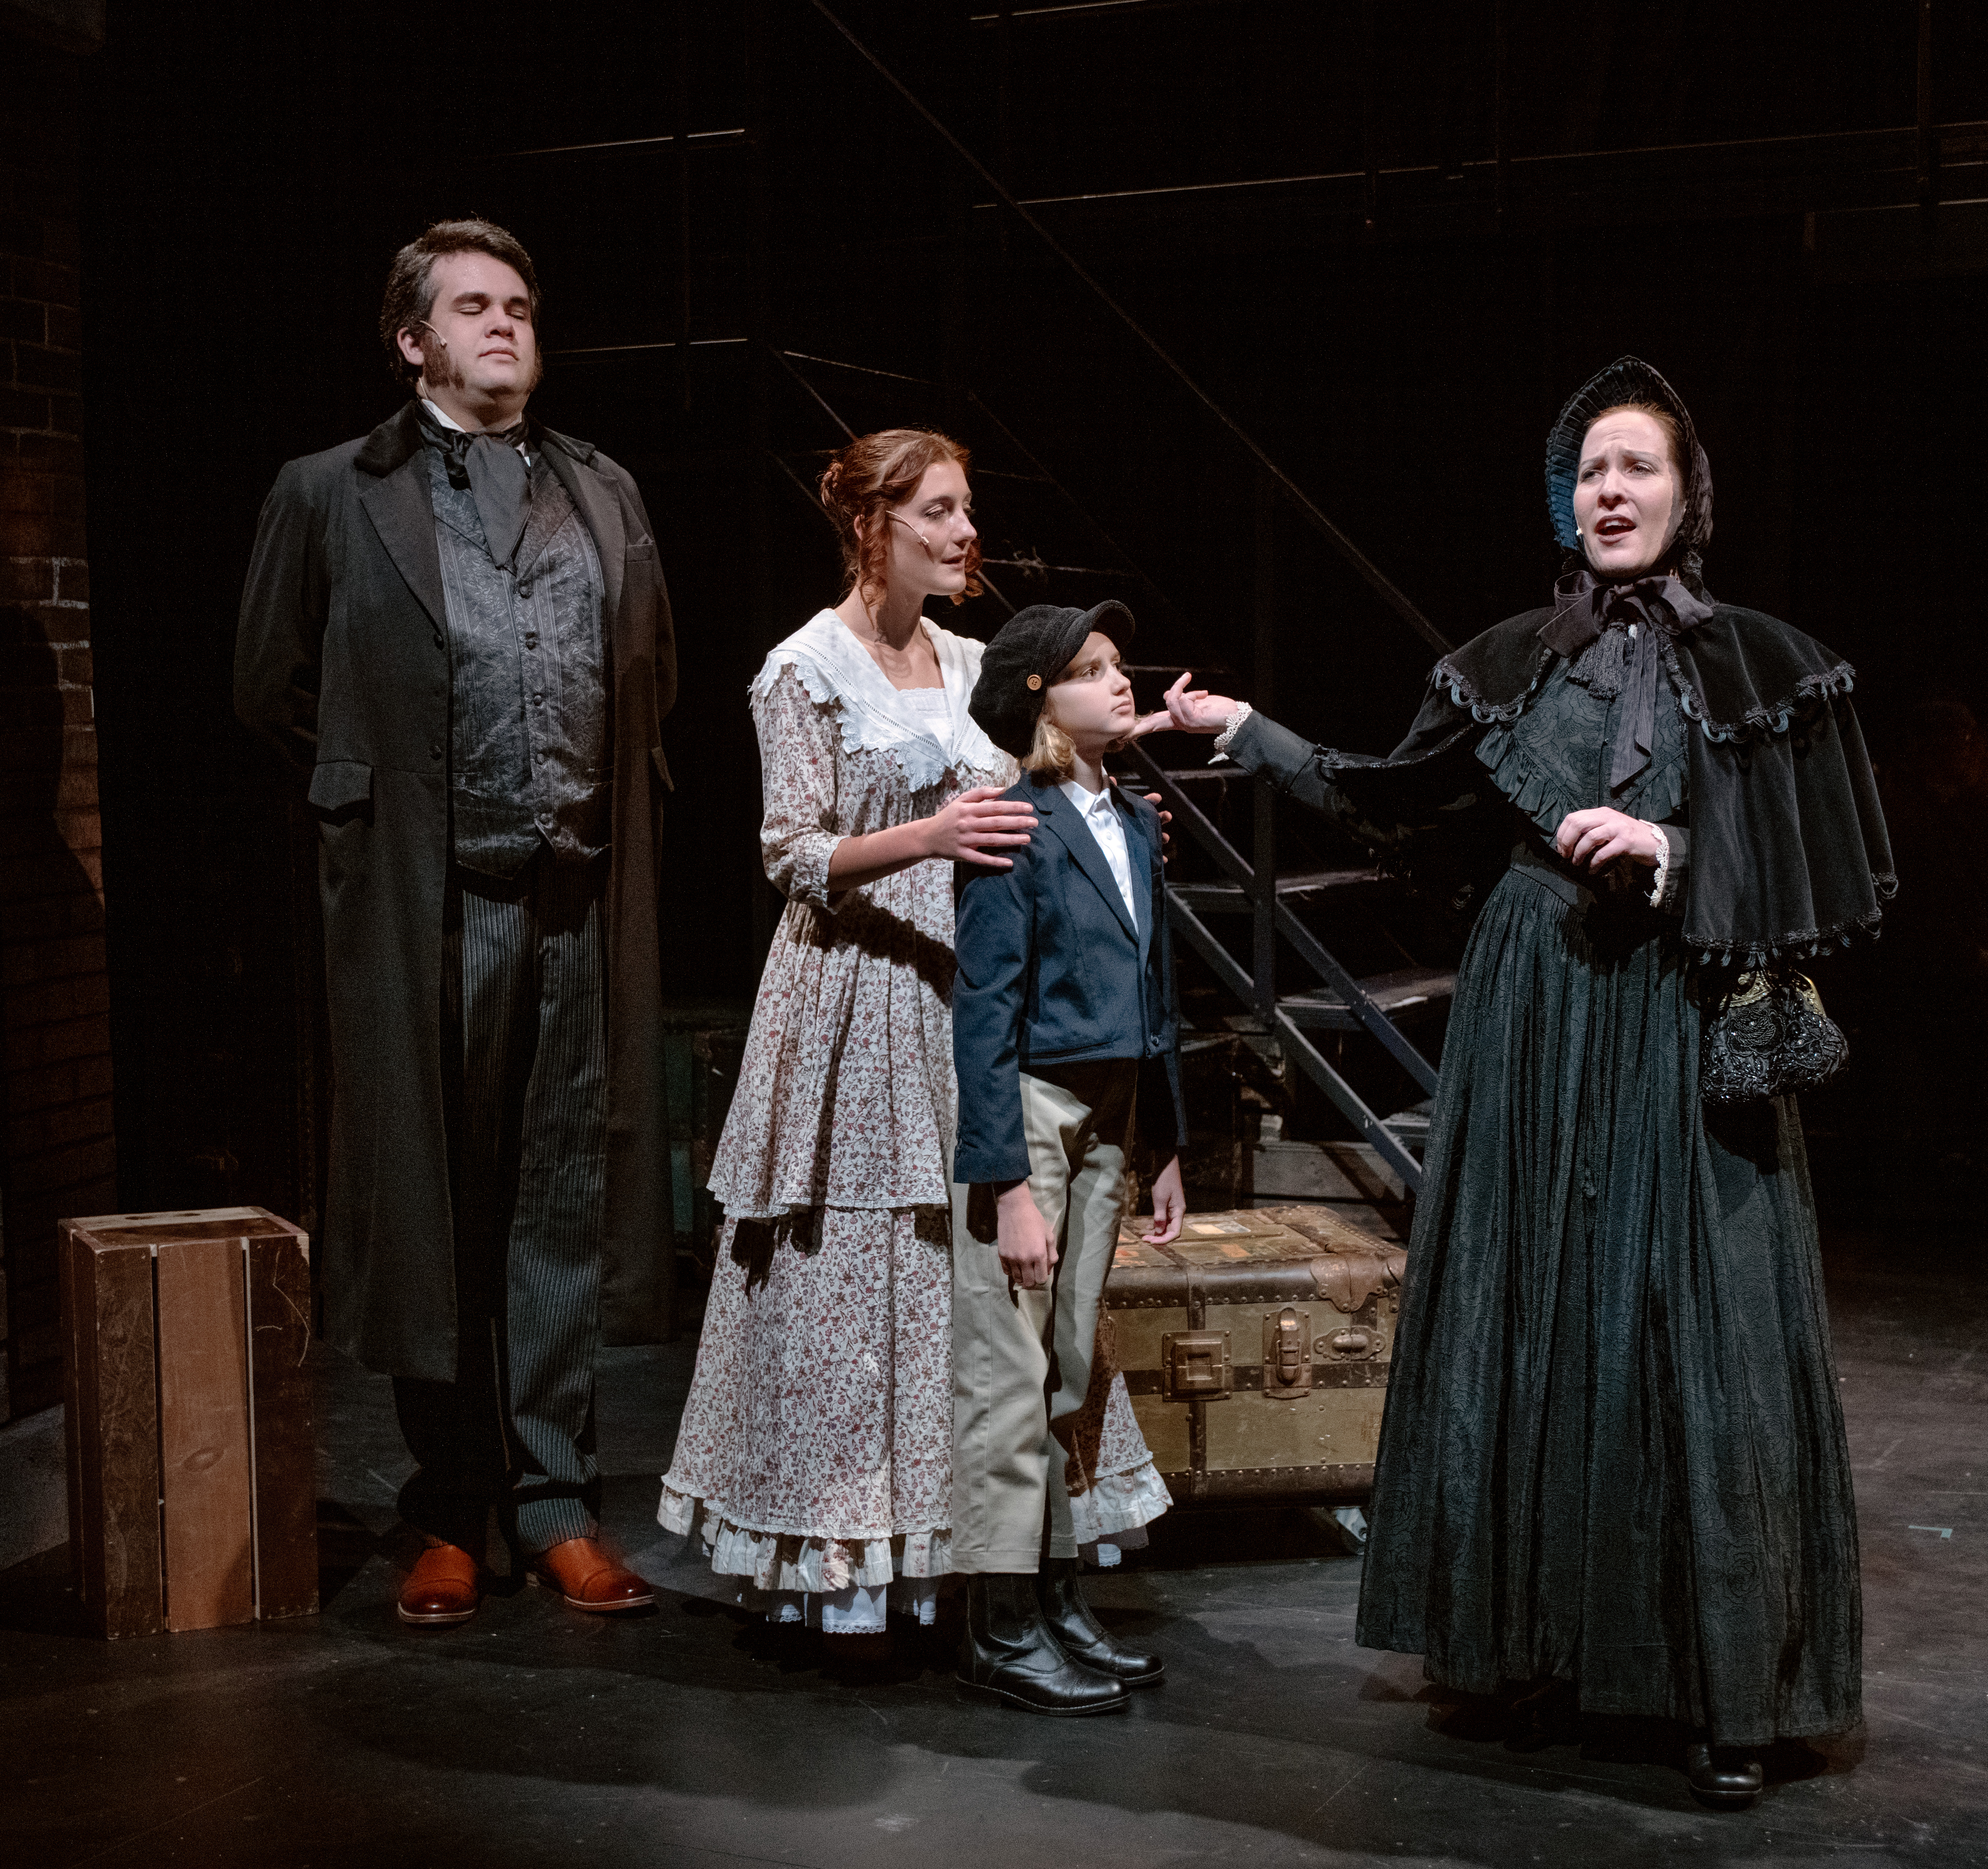 David Copperfield, The New Musical | Jewel Theatre